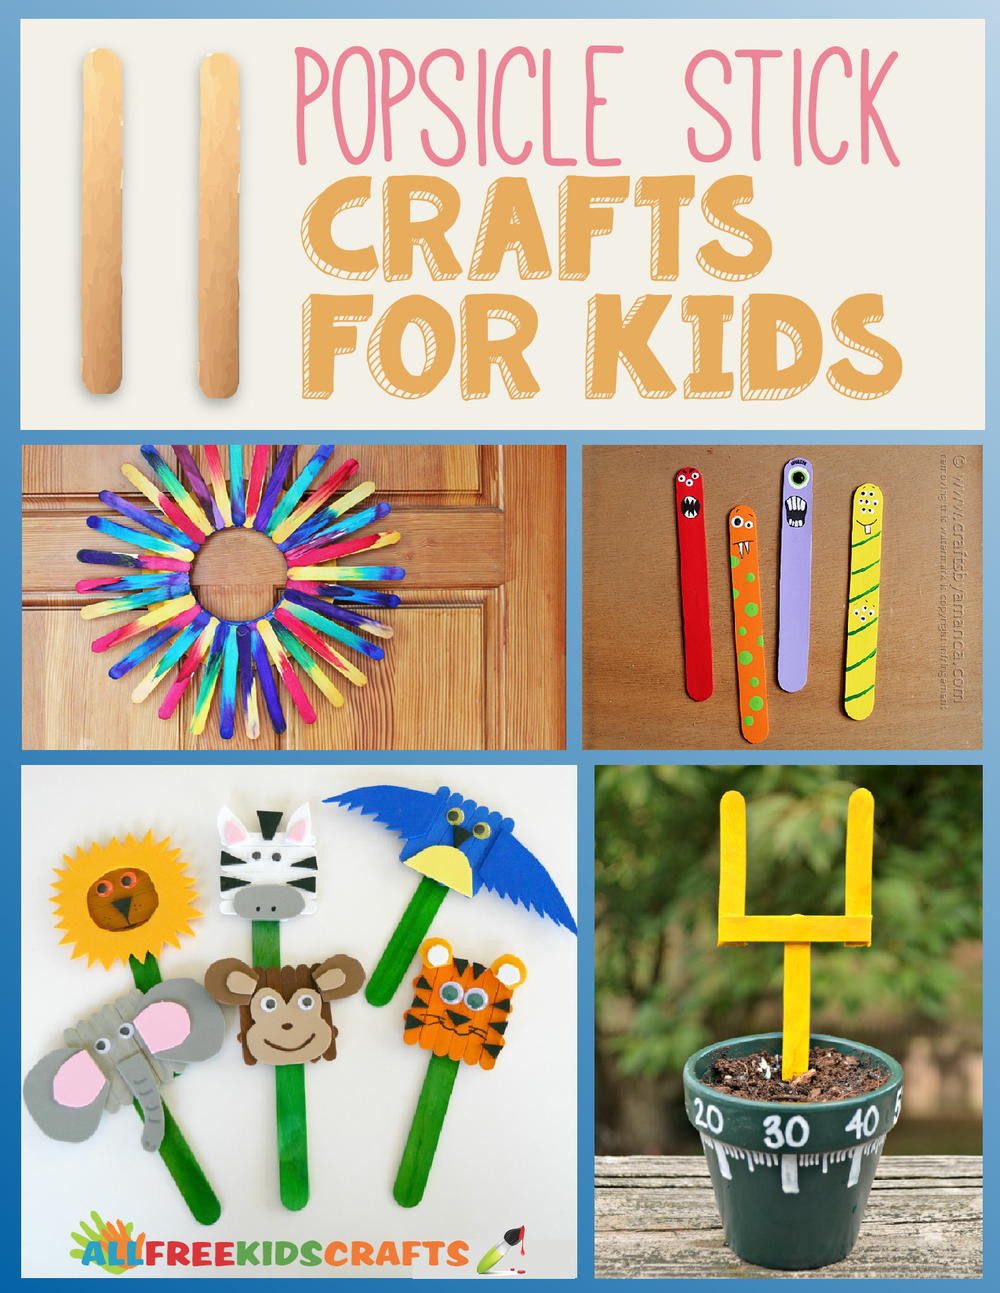 Best ideas about Project For Kids . Save or Pin 11 Popsicle Stick Crafts for Kids Now.